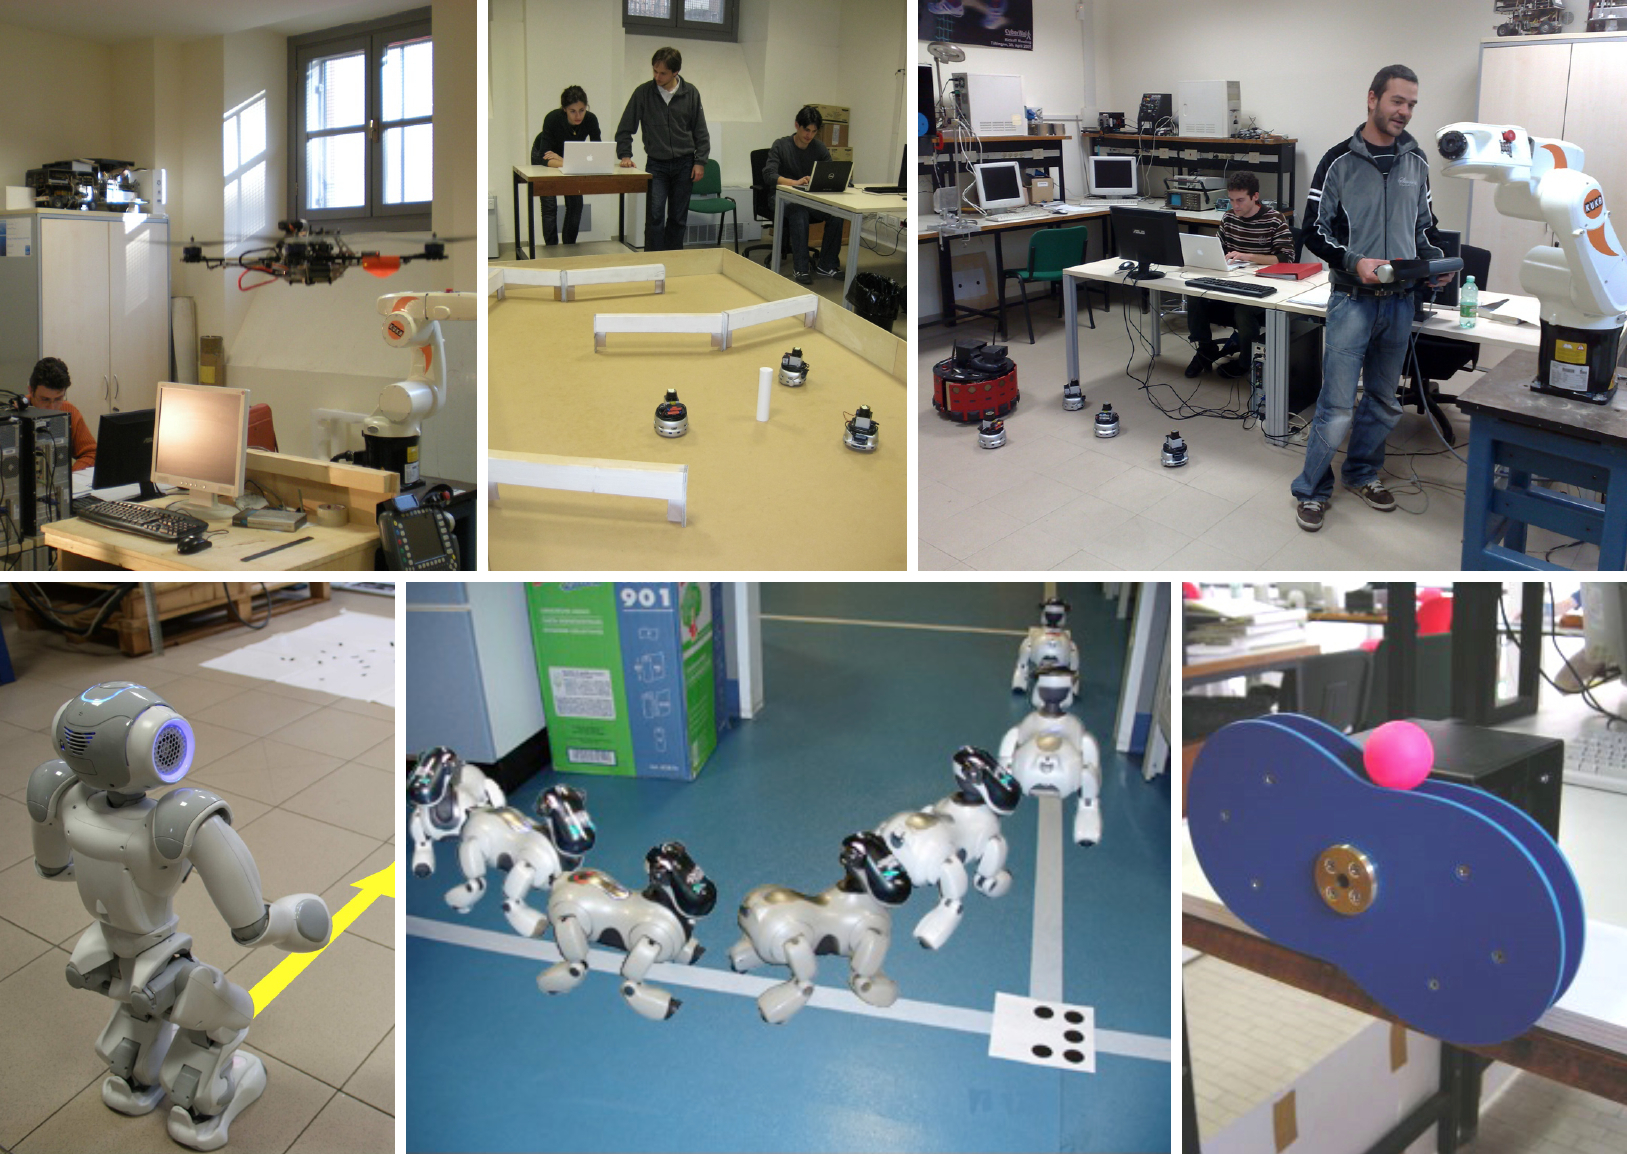 thesis based on robotics Graduates of the program will take a leading role in the research and development of future generations of integrated robotics thesis that describes based on.